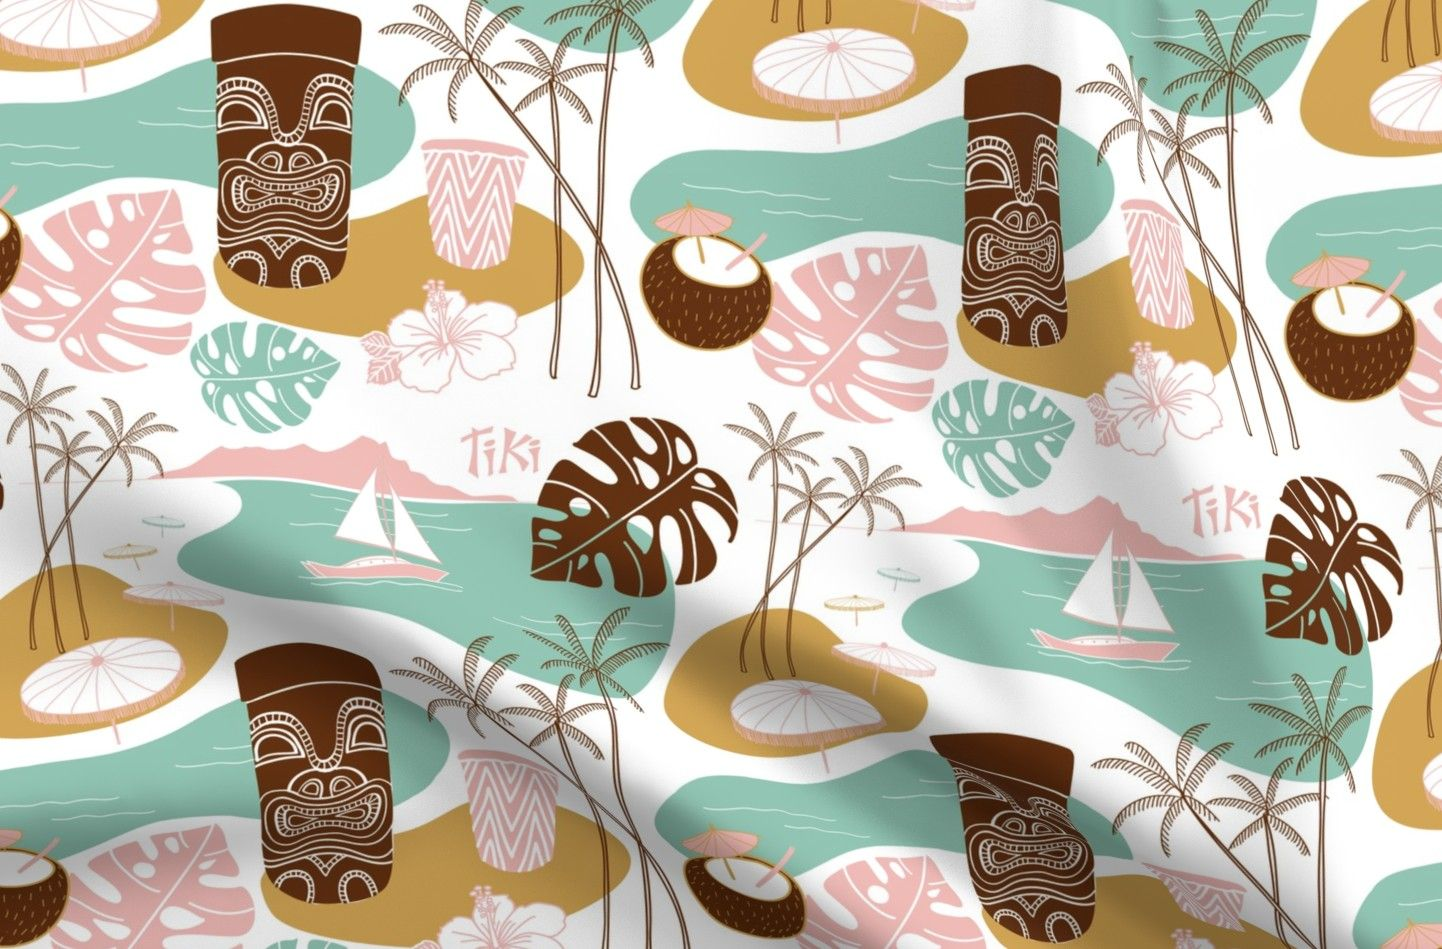 Colorful Fabrics Digitally Printed By Spoonflower Mid Century Modern Tiki Time In 2021 Tiki Spoonflower Pastel Colors